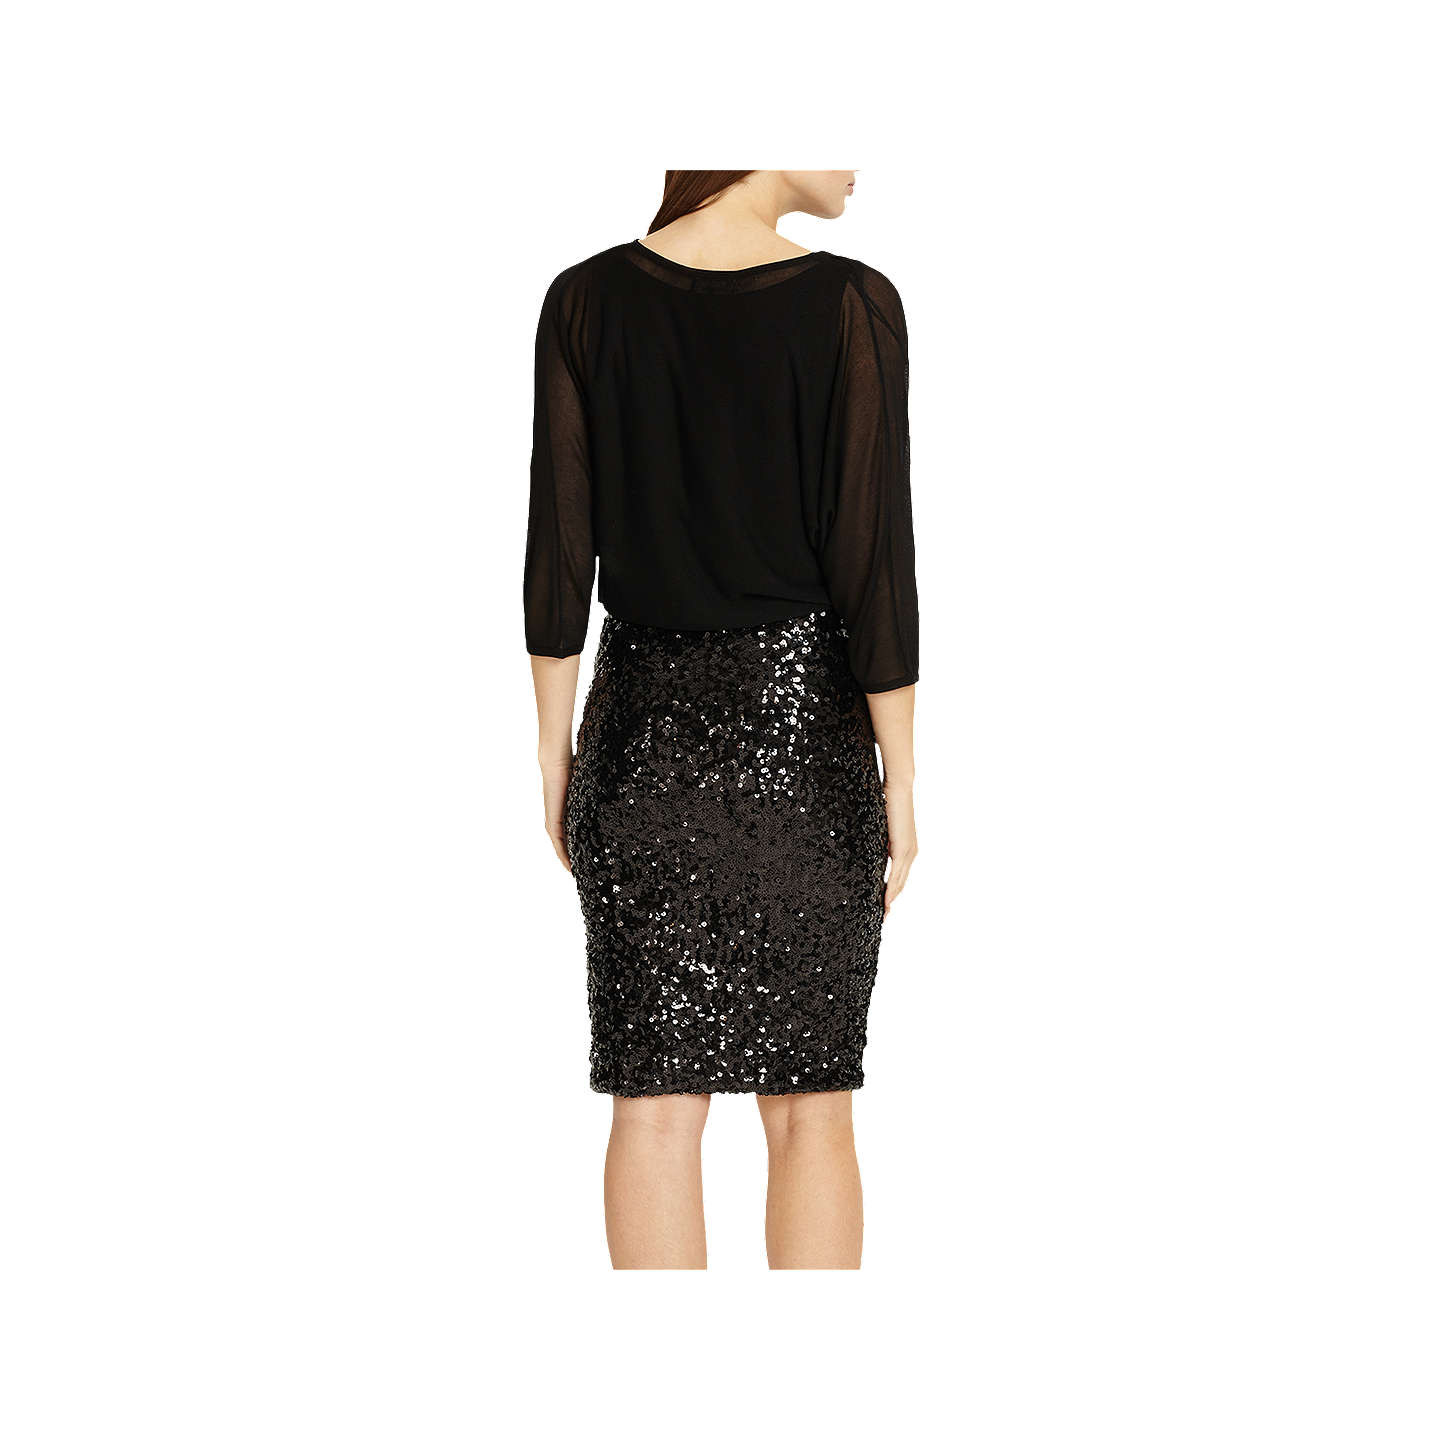 BuyPhase Eight Adele Sequin Dress, Black, 8 Online at johnlewis.com